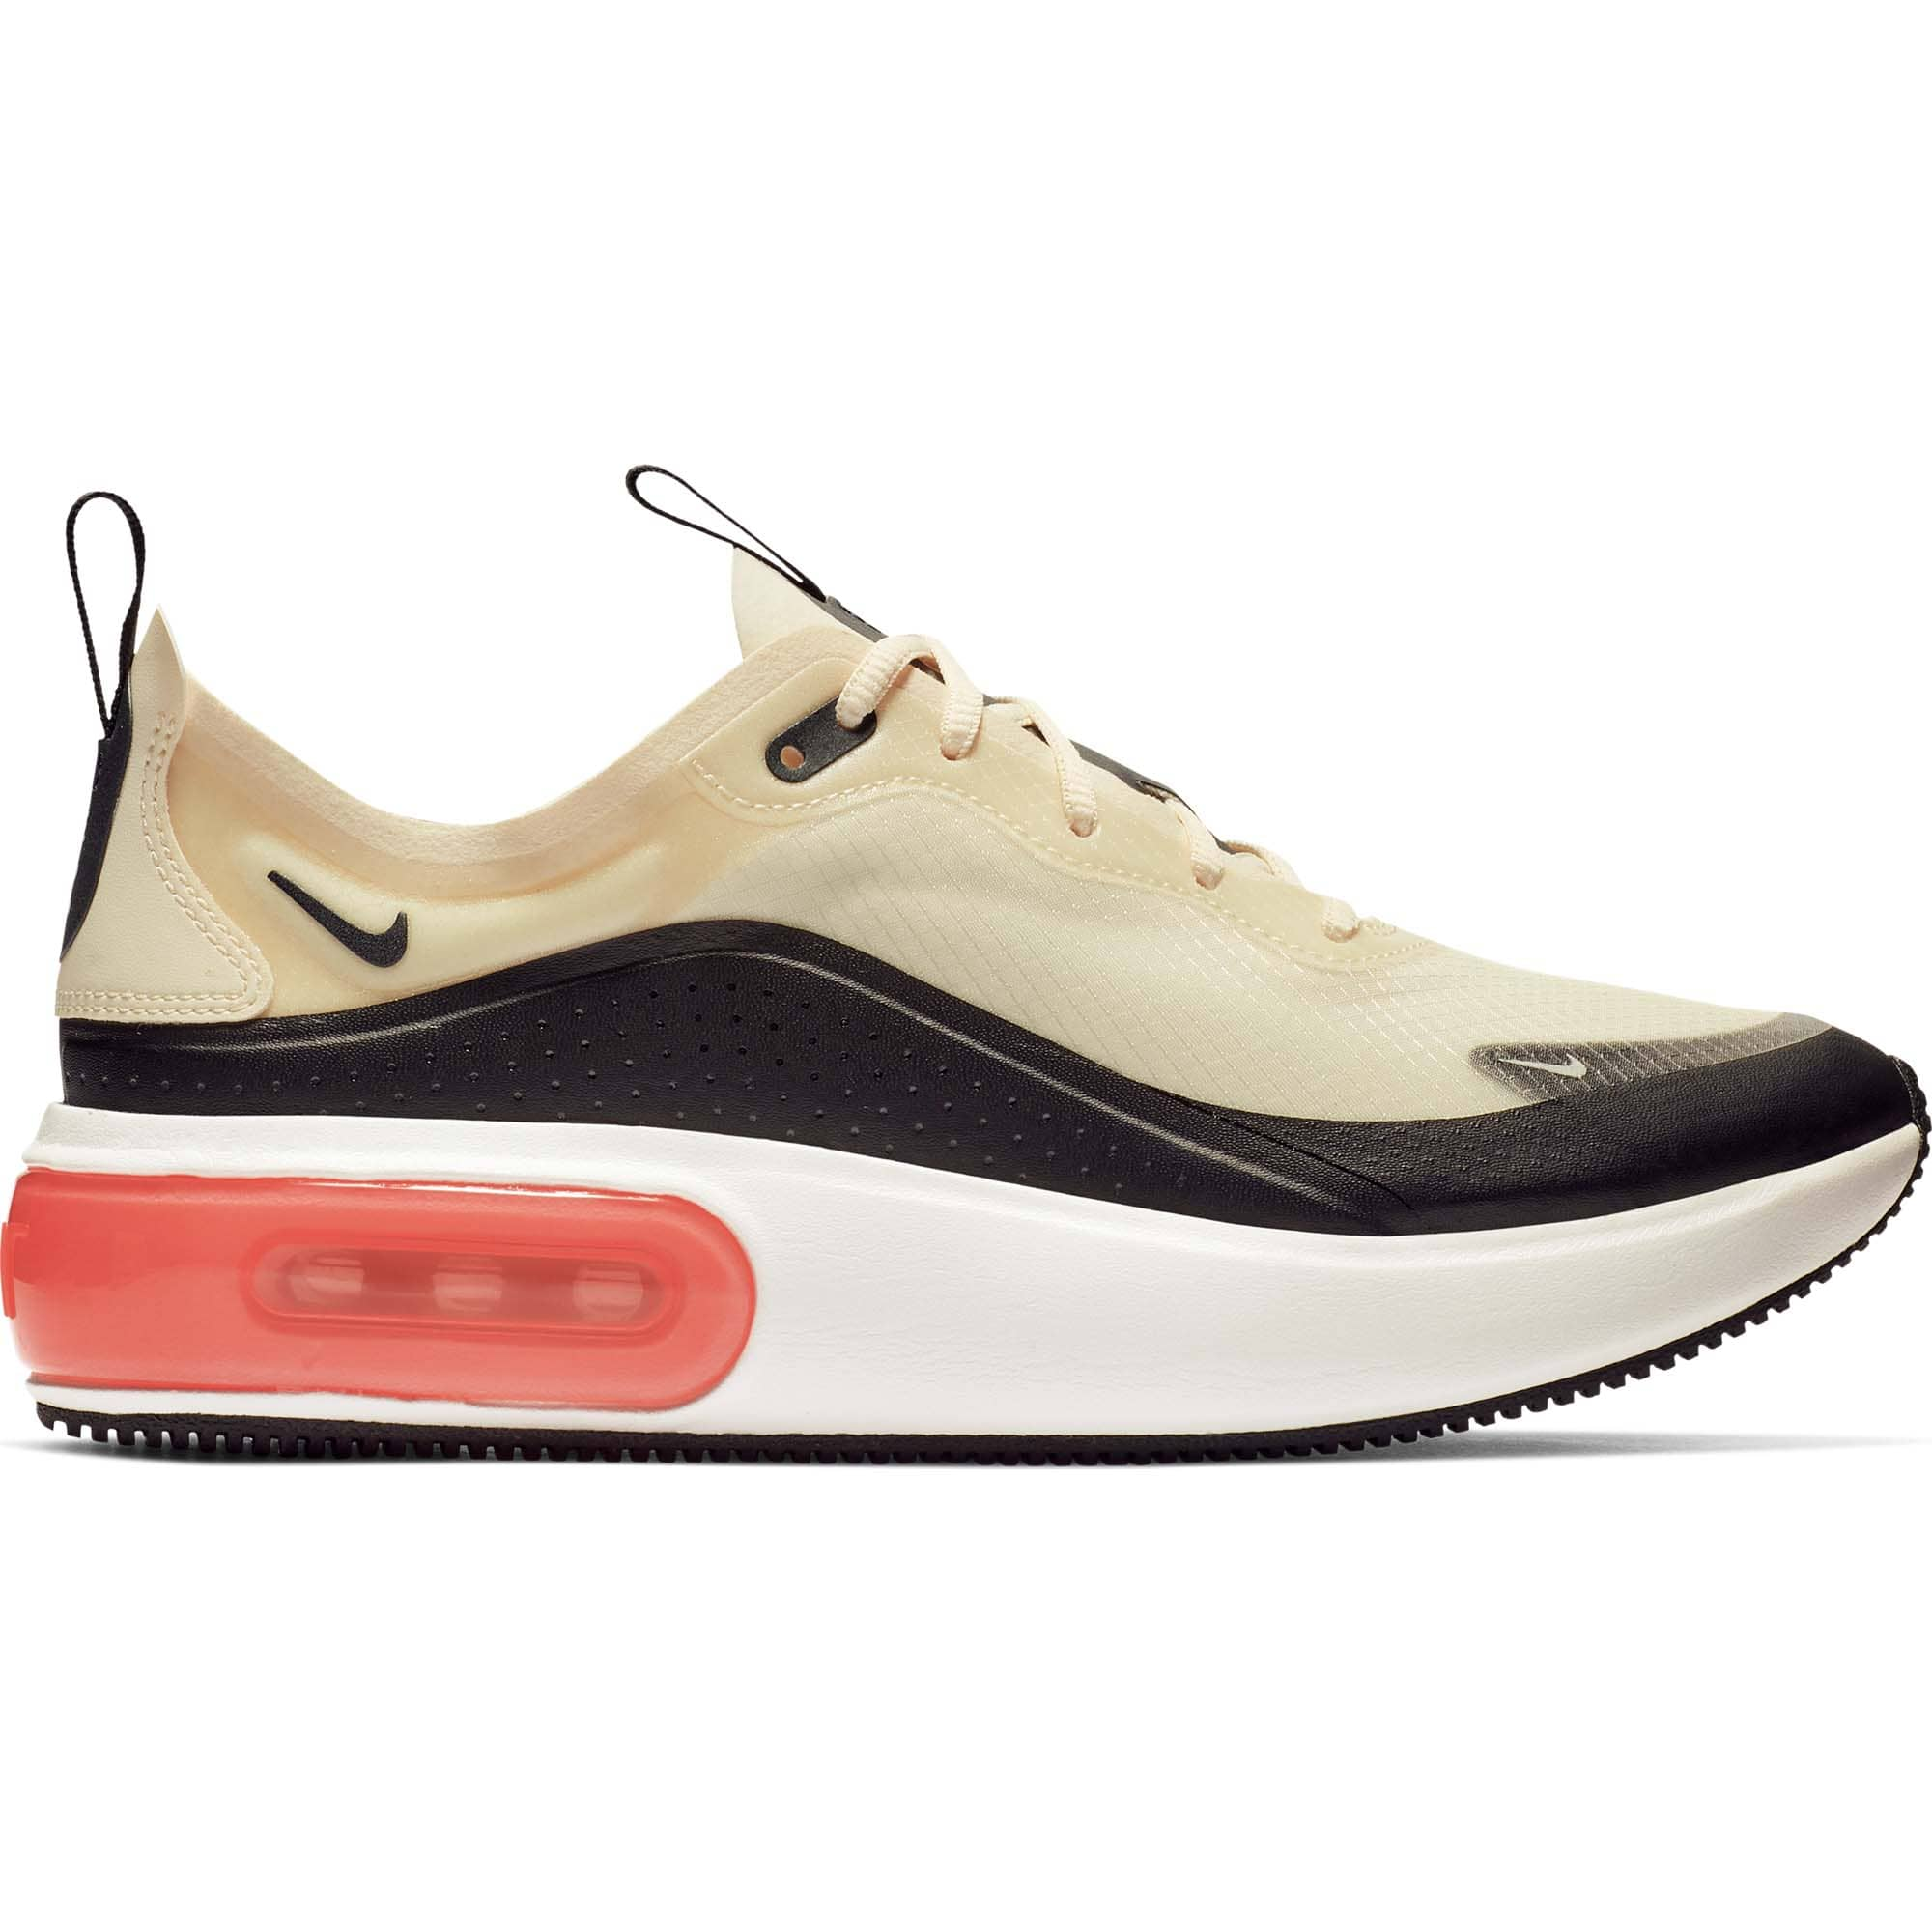 nike sportswear air max dia se damen sneaker beige. Black Bedroom Furniture Sets. Home Design Ideas